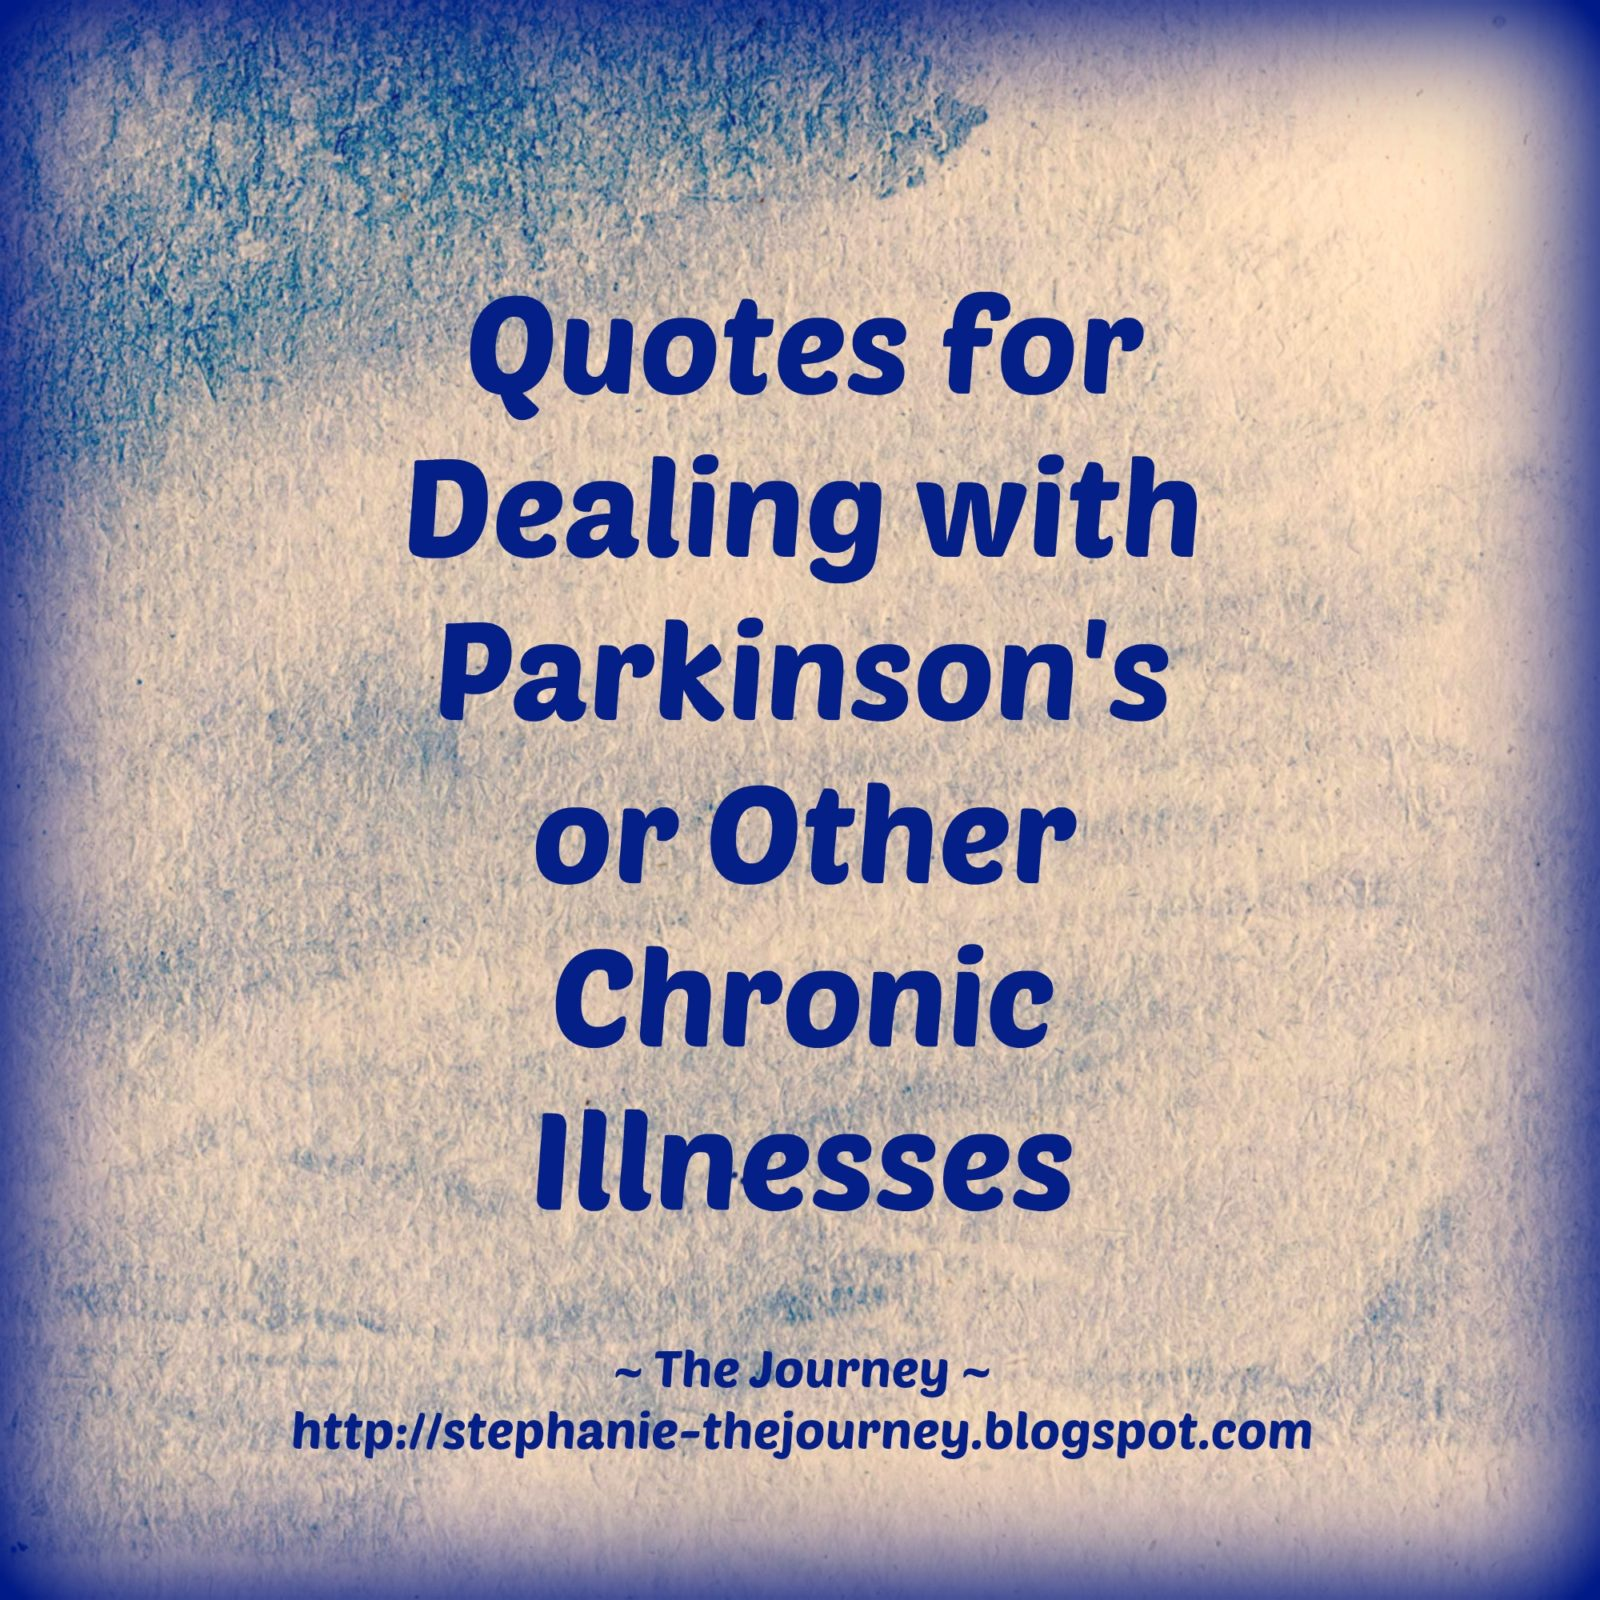 Throwing In The Towel Quotes Quotes For Dealing With Parkinson's Or Other Chronic Illnesses